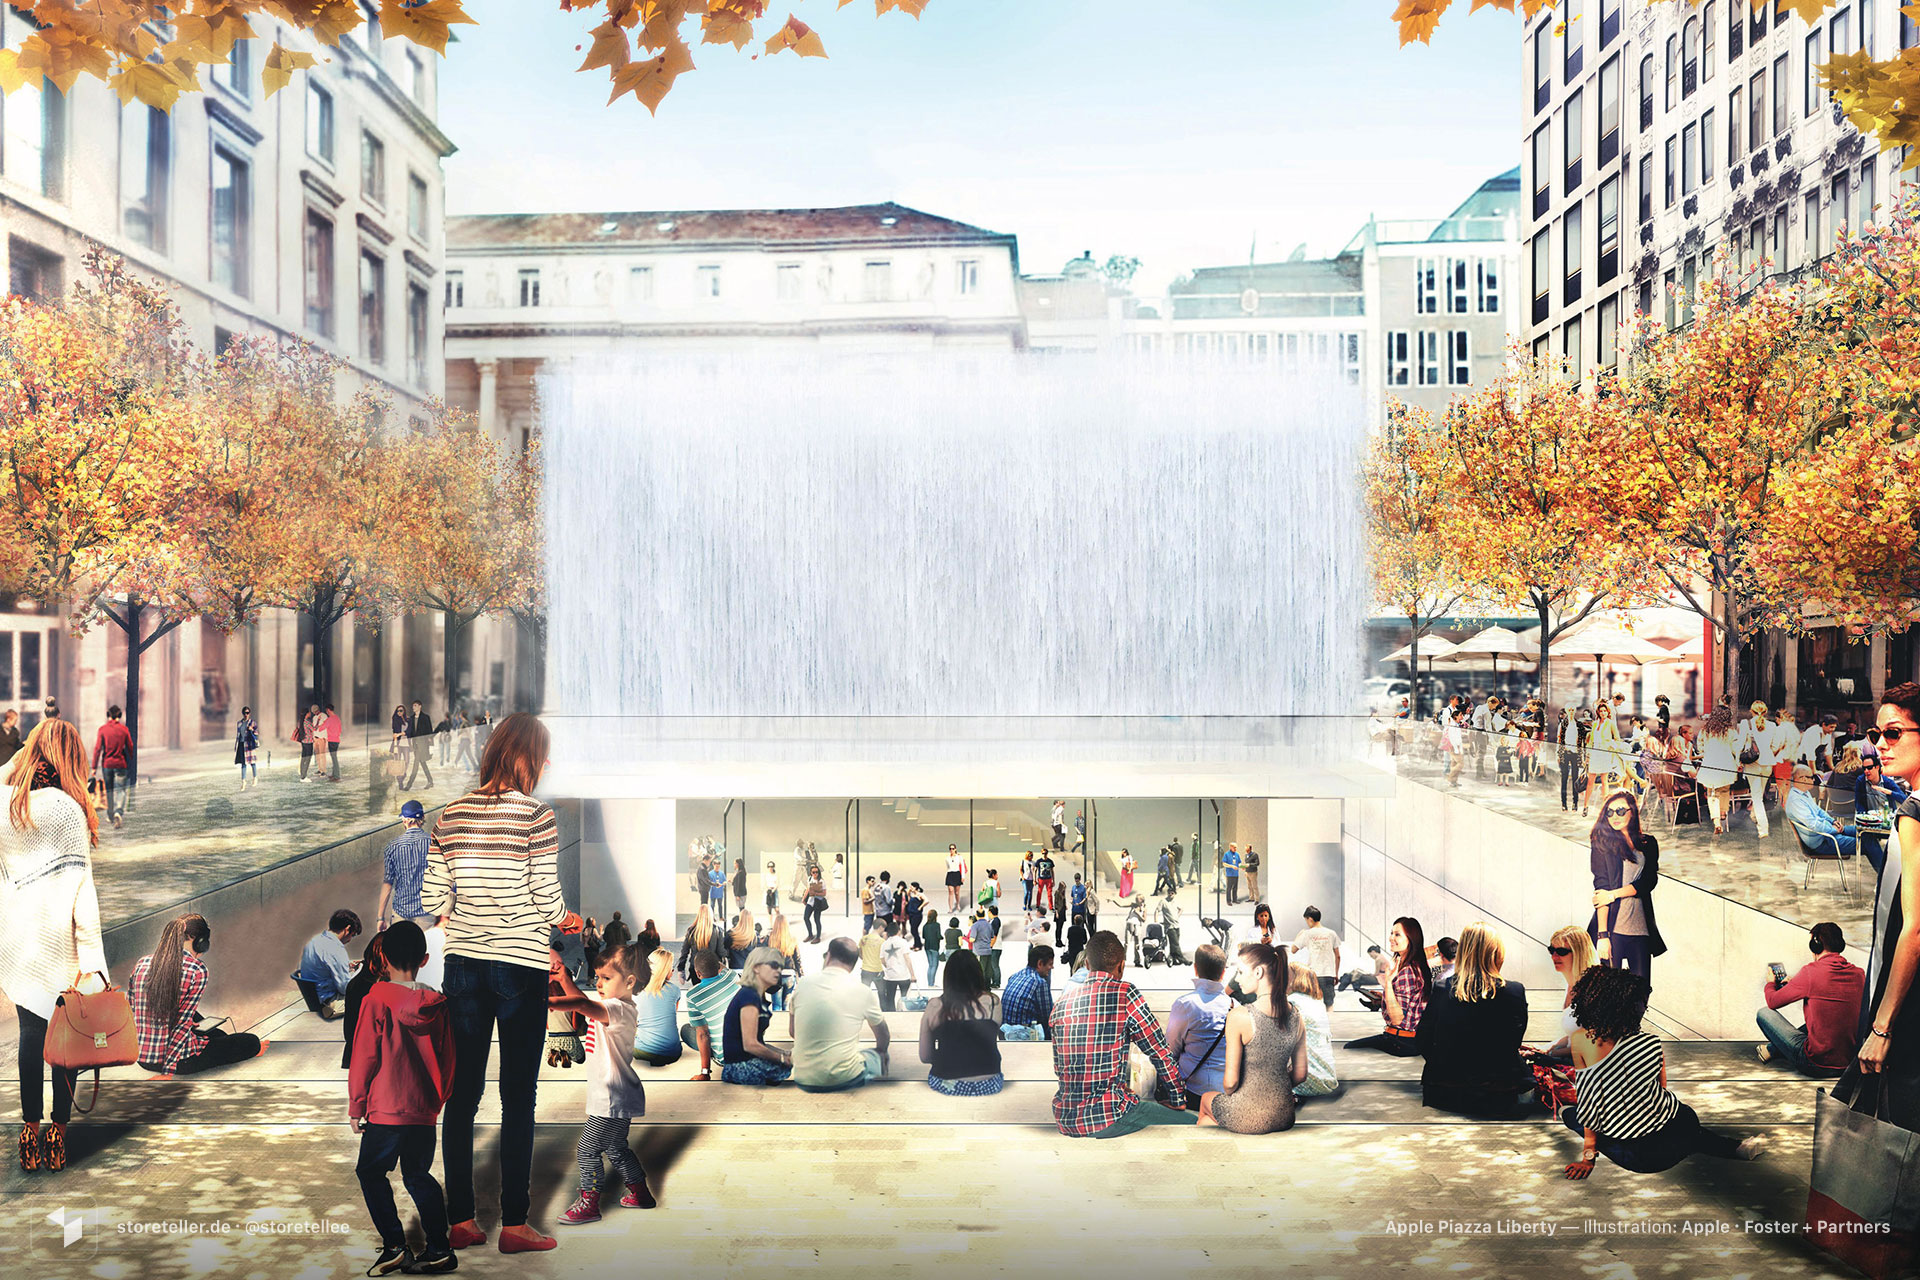 Apple Piazza Liberty, Mailand, Italien